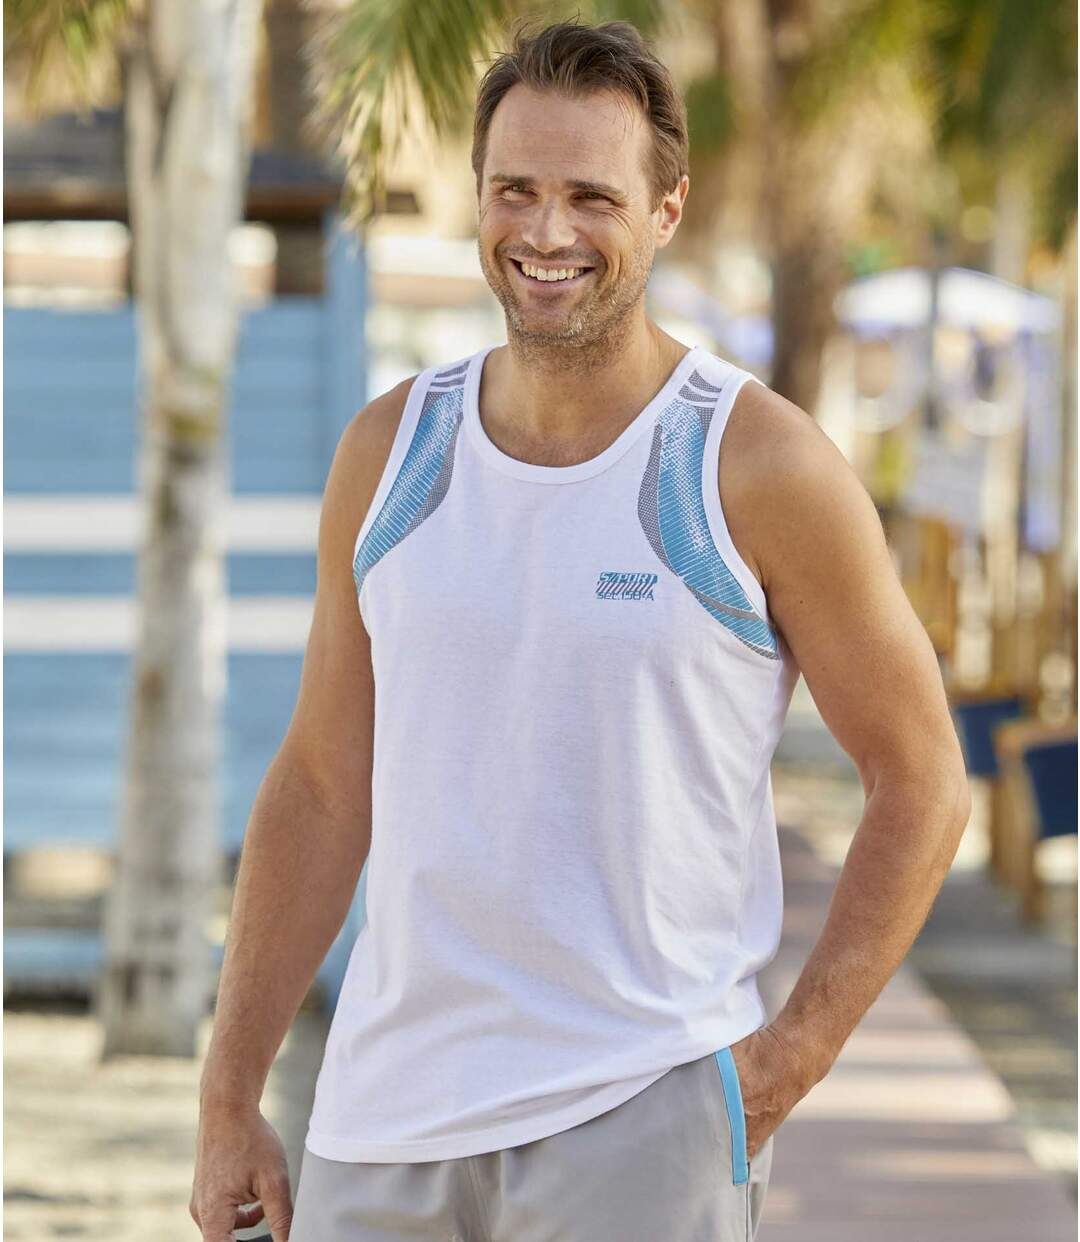 Pack of 3 Men's Sporty Graphic Vests - Black White Turquoise